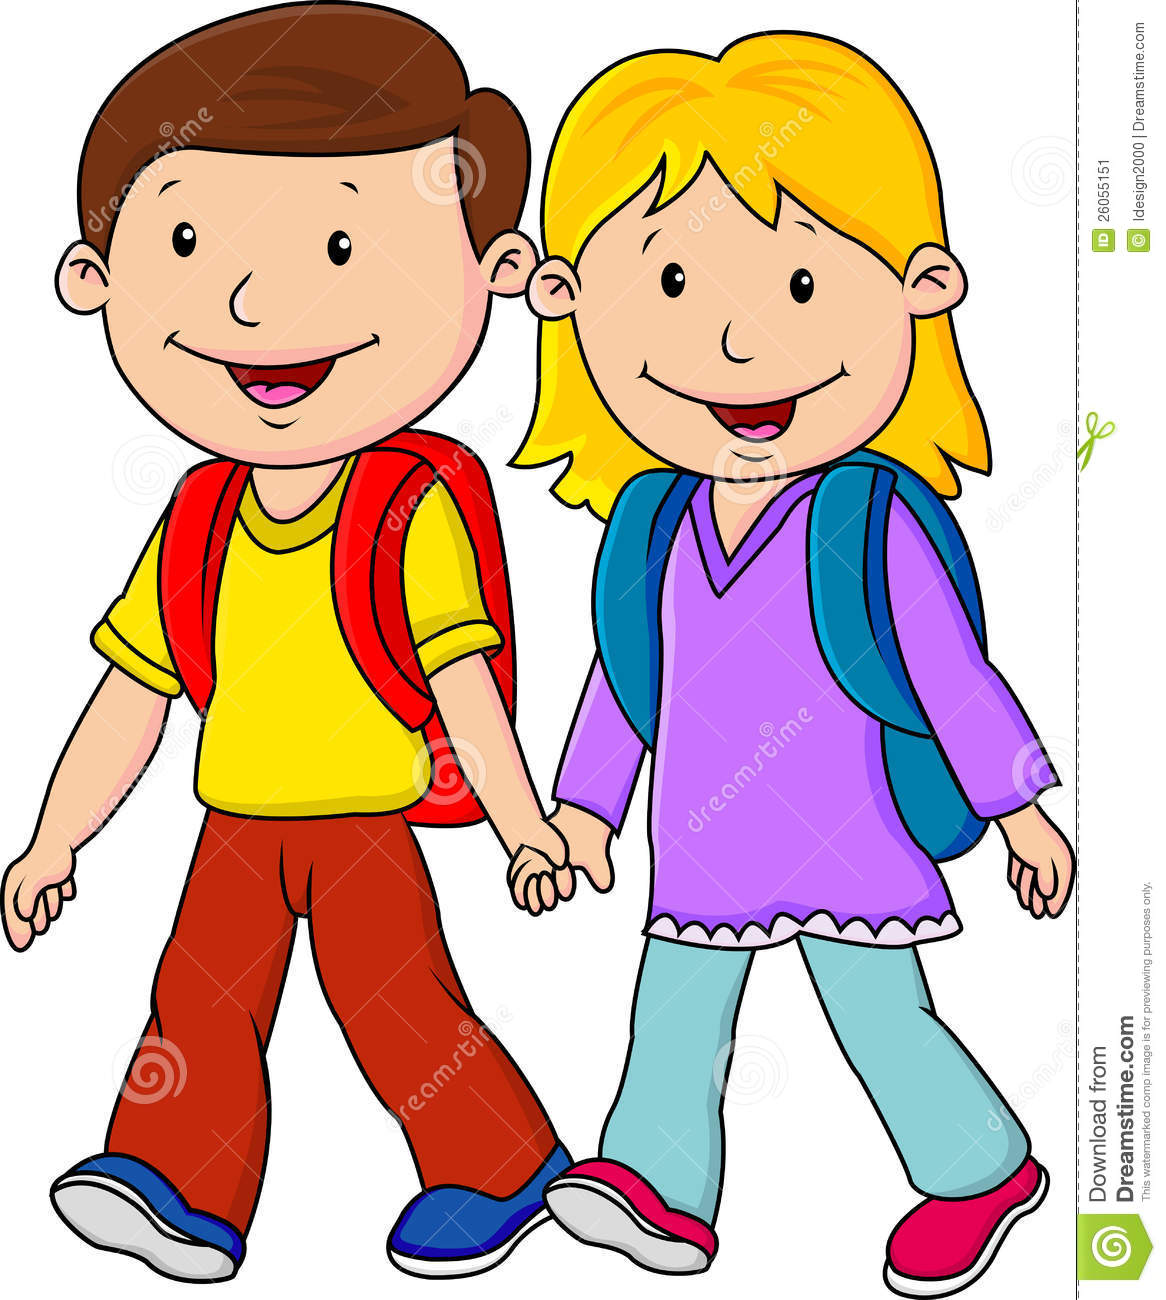 Children go to school clipart jpg freeuse stock Child going to school clipart 10 » Clipart Station jpg freeuse stock